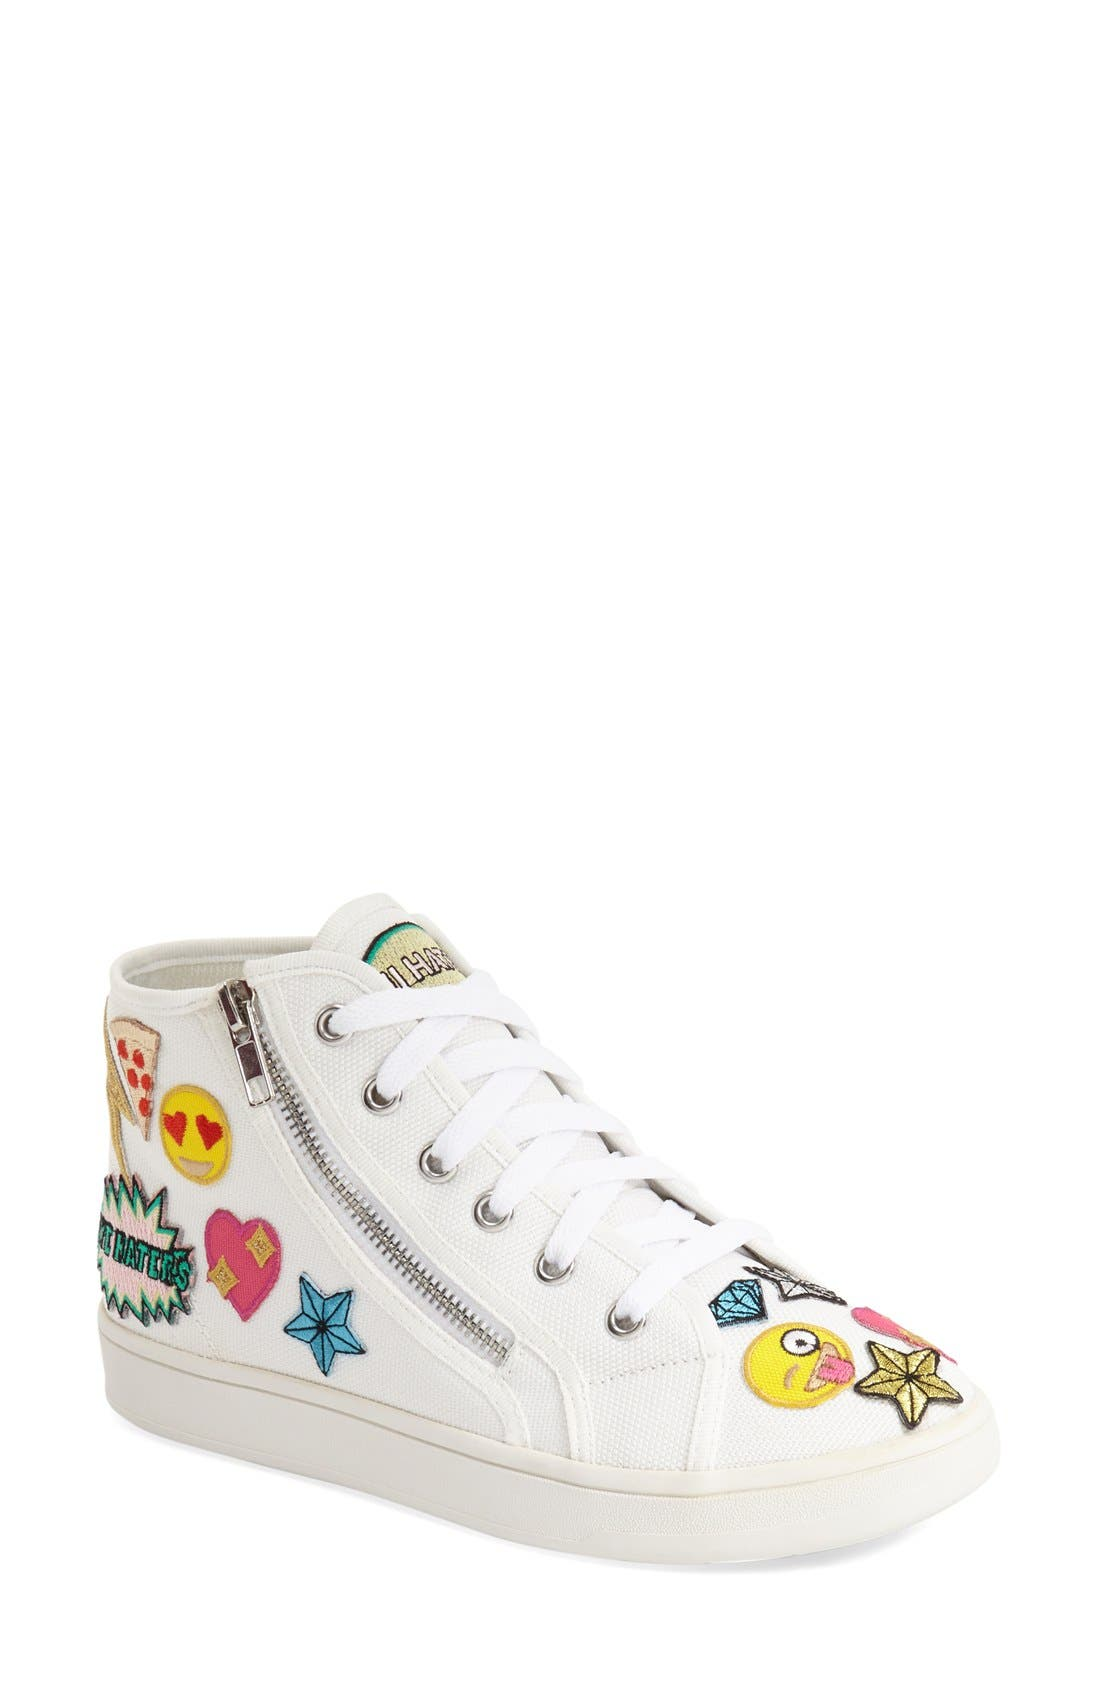 Alternate Image 1 Selected - Steve Madden 'Cobrah' High Top Sneaker (Women)